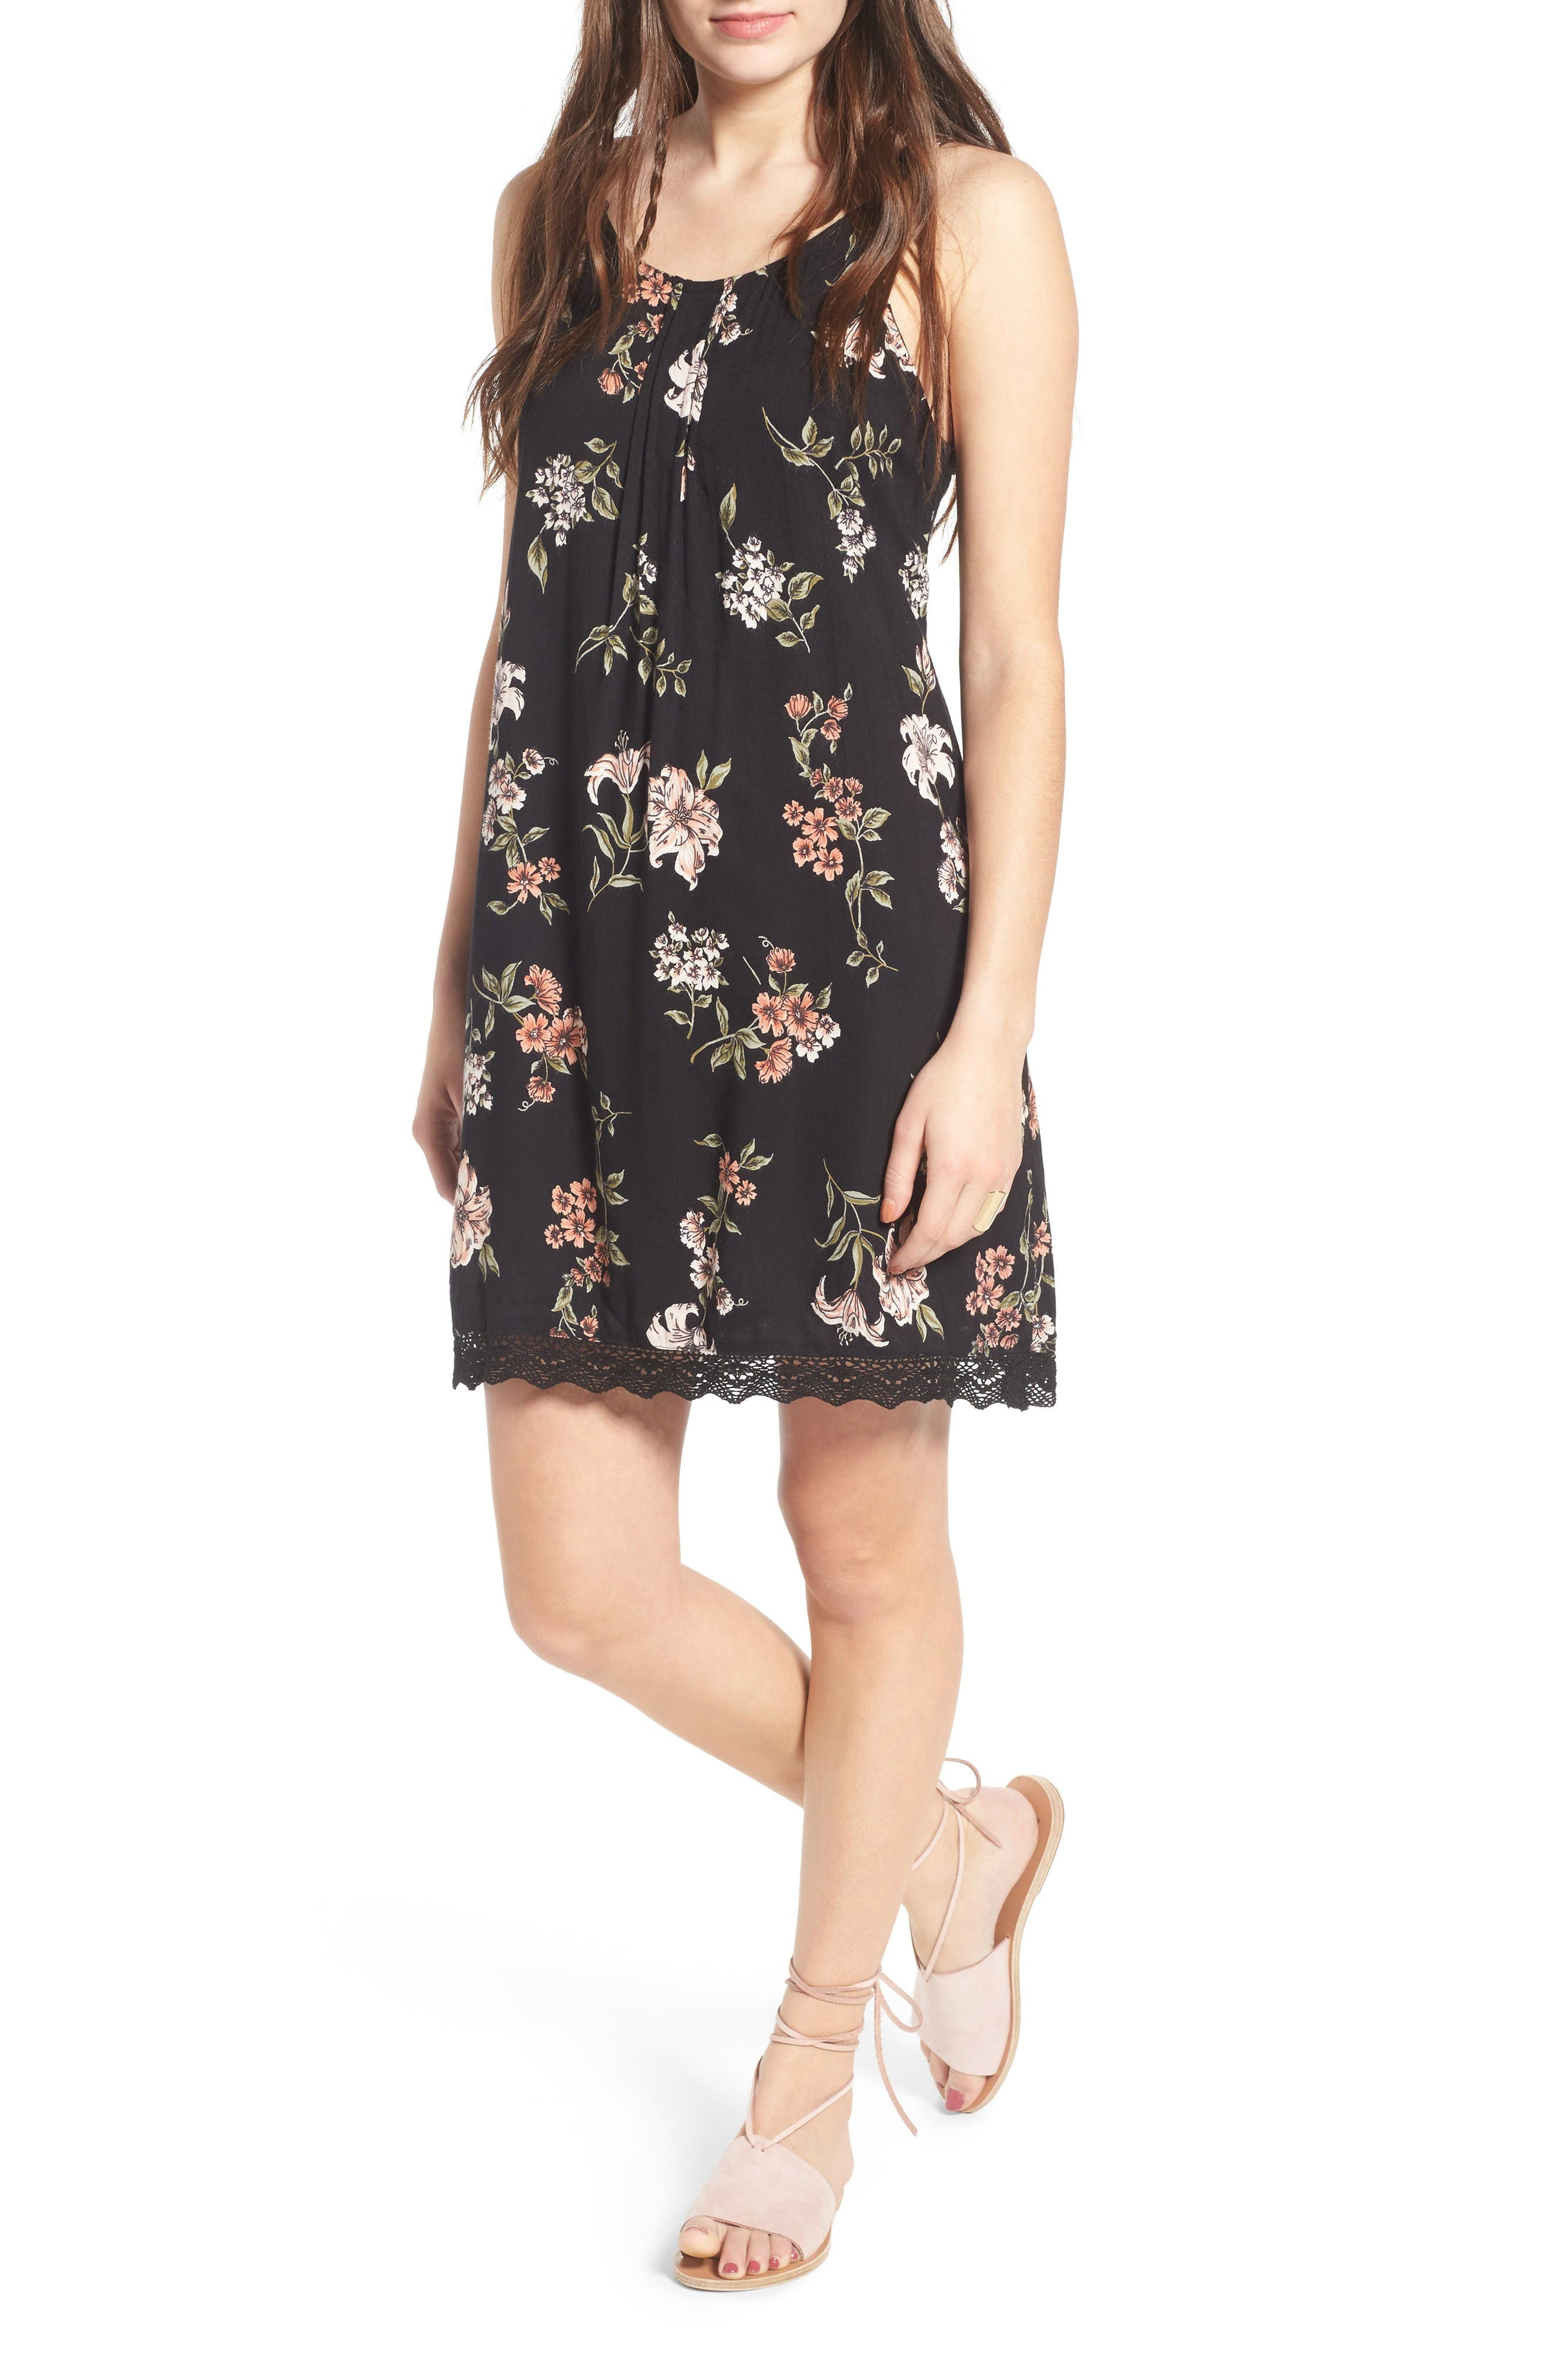 Main Image - Angie Floral Print Strappy Back Dress